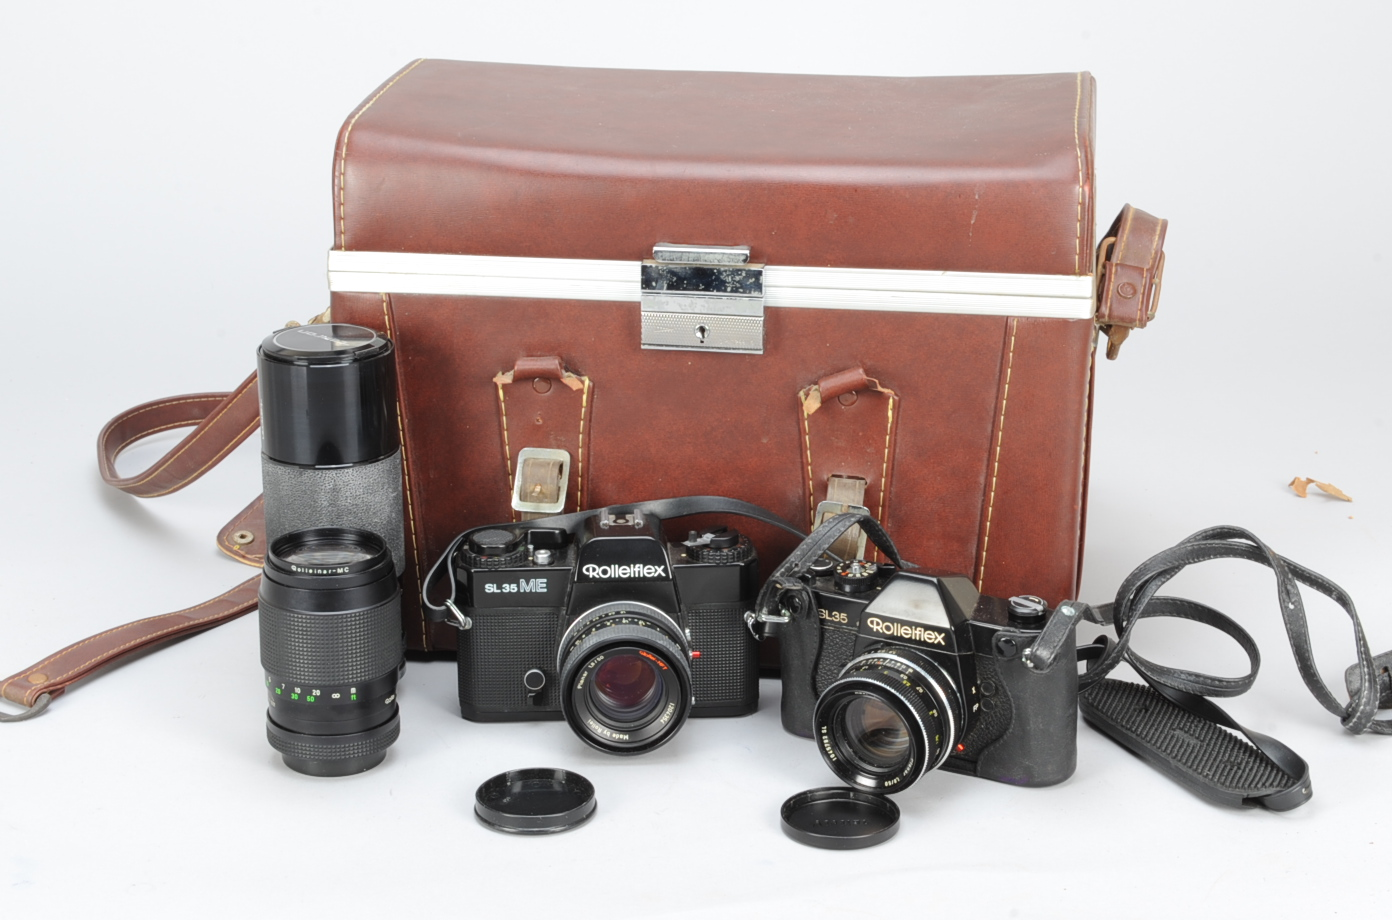 Lot 39 - Rolleiflex SL35 SLR Cameras and Lenses, black, shutter working, meter untested, a Rollei-HFT